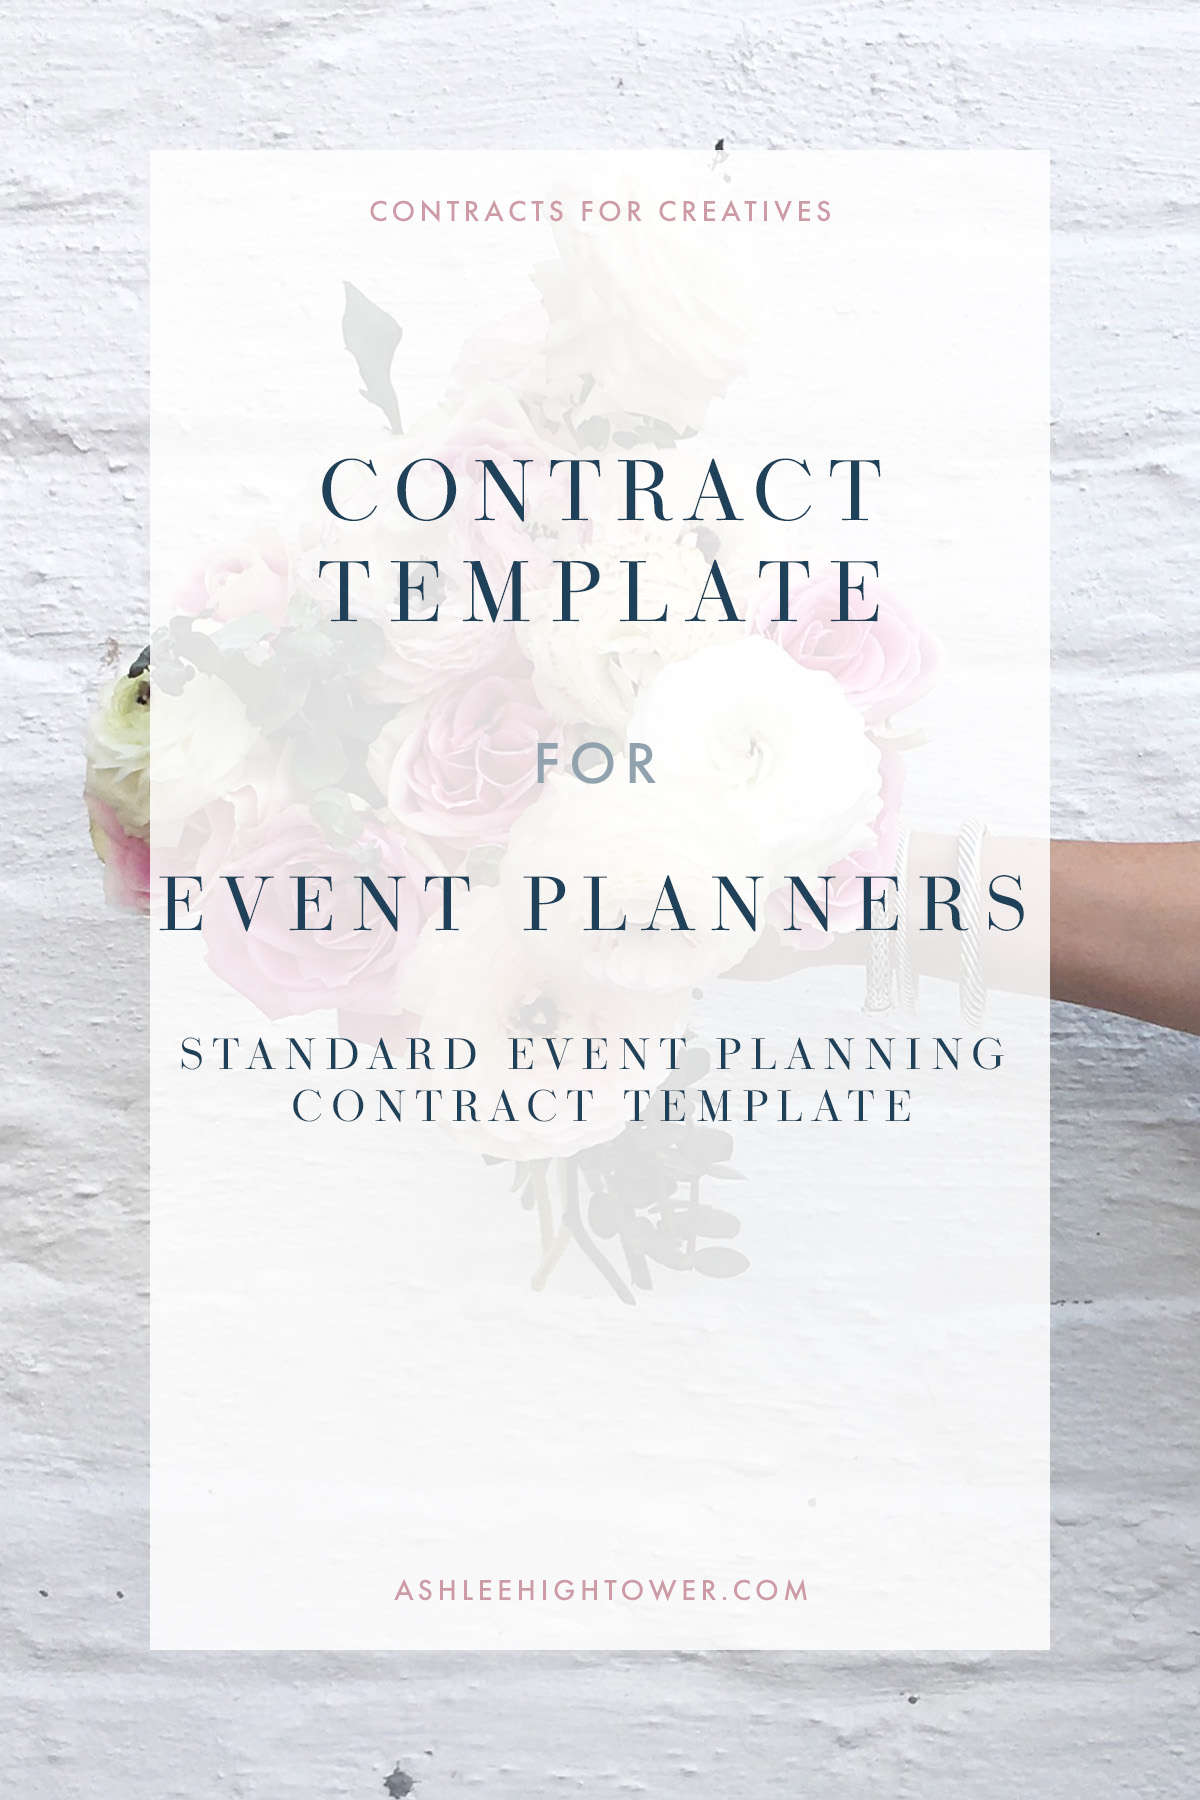 Contracts for Creatives | Event Planning Contract Template | Ashlee Hightower